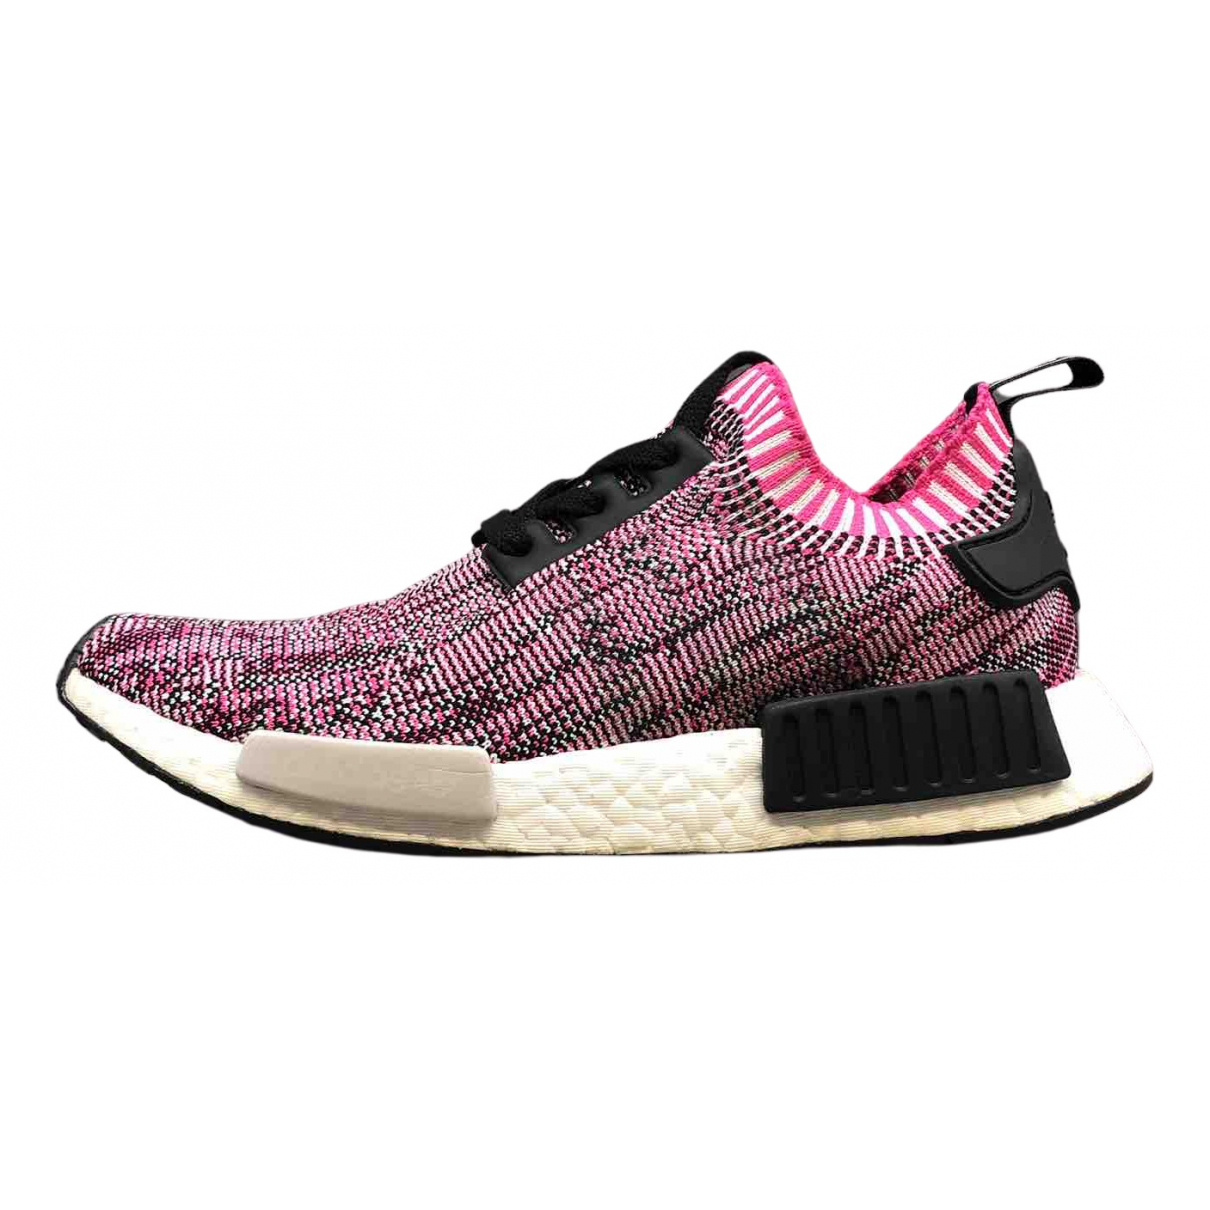 Adidas Nmd Pink Cloth Trainers for Women 41.5 EU